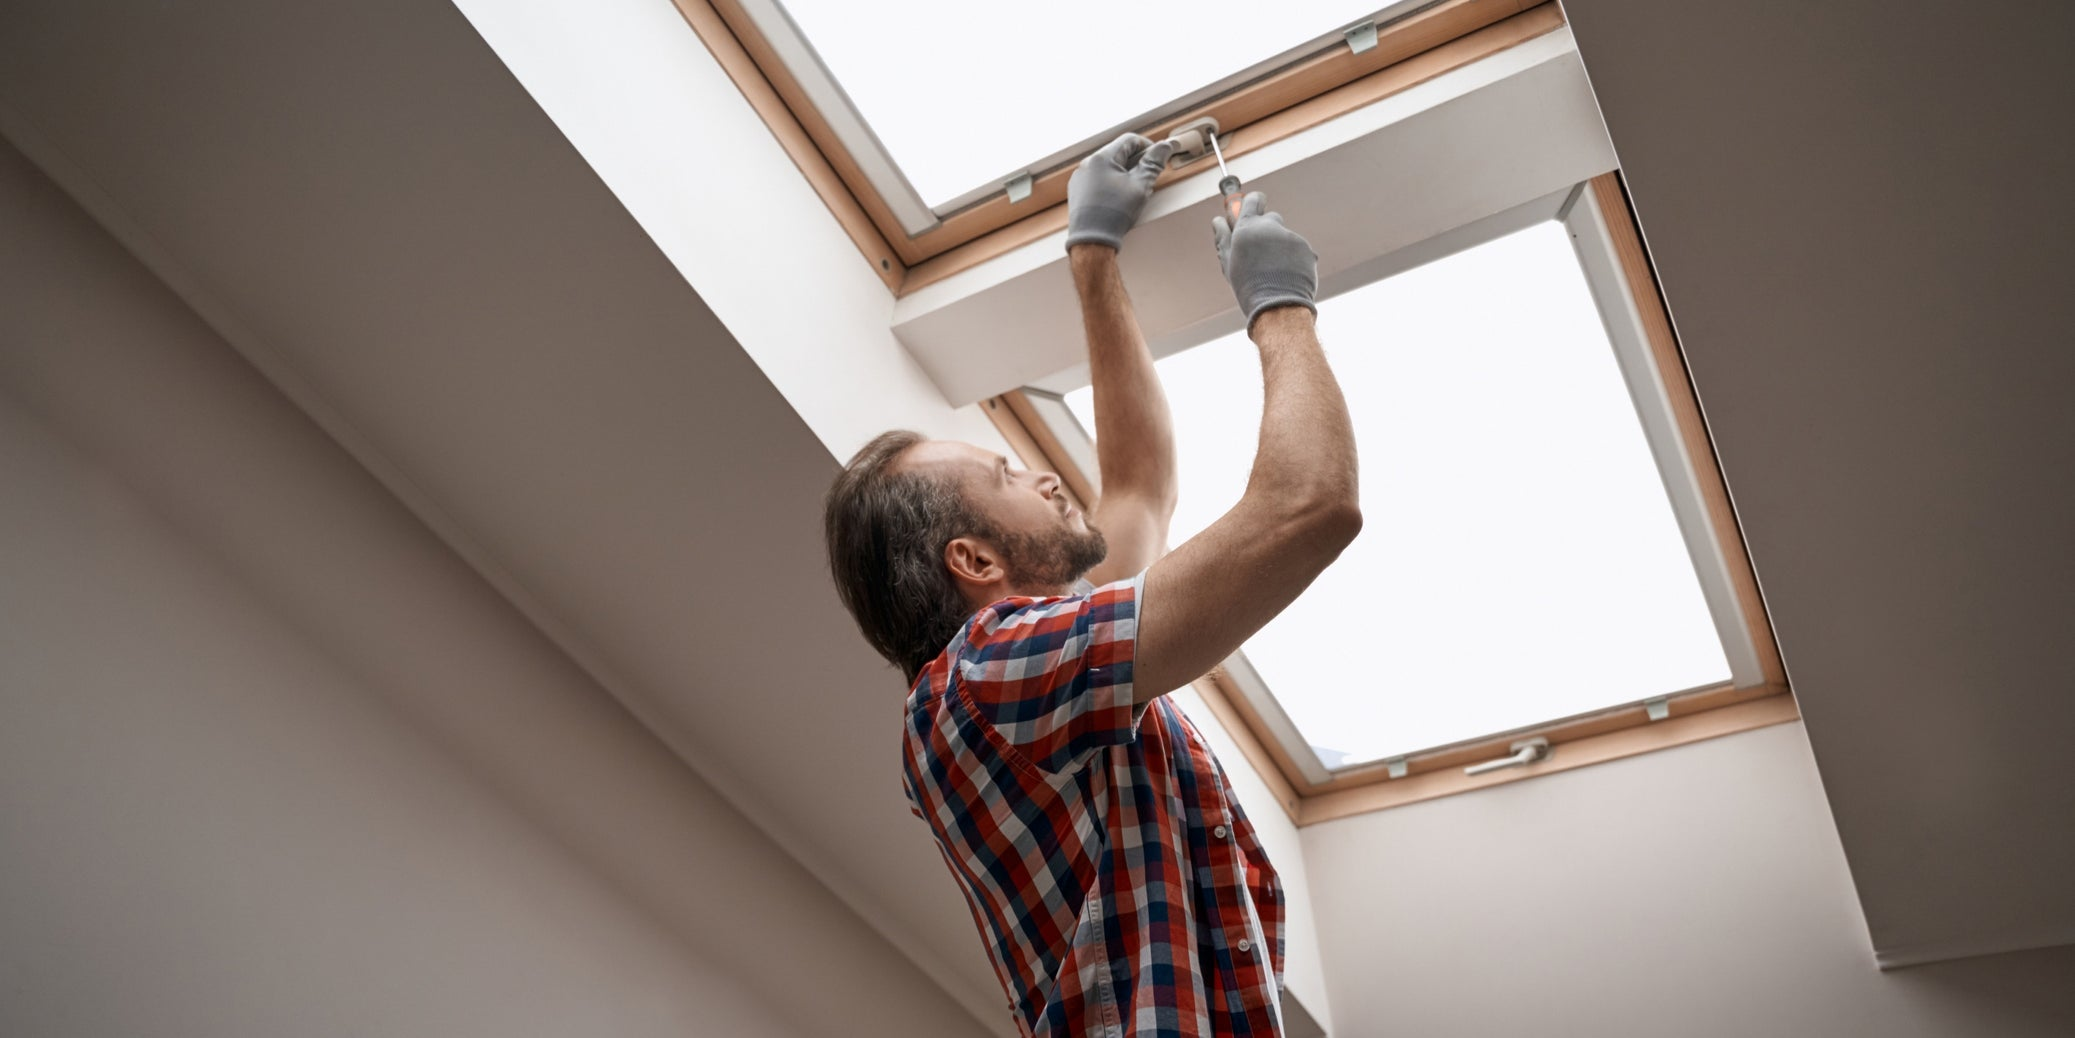 Skylight repair and install